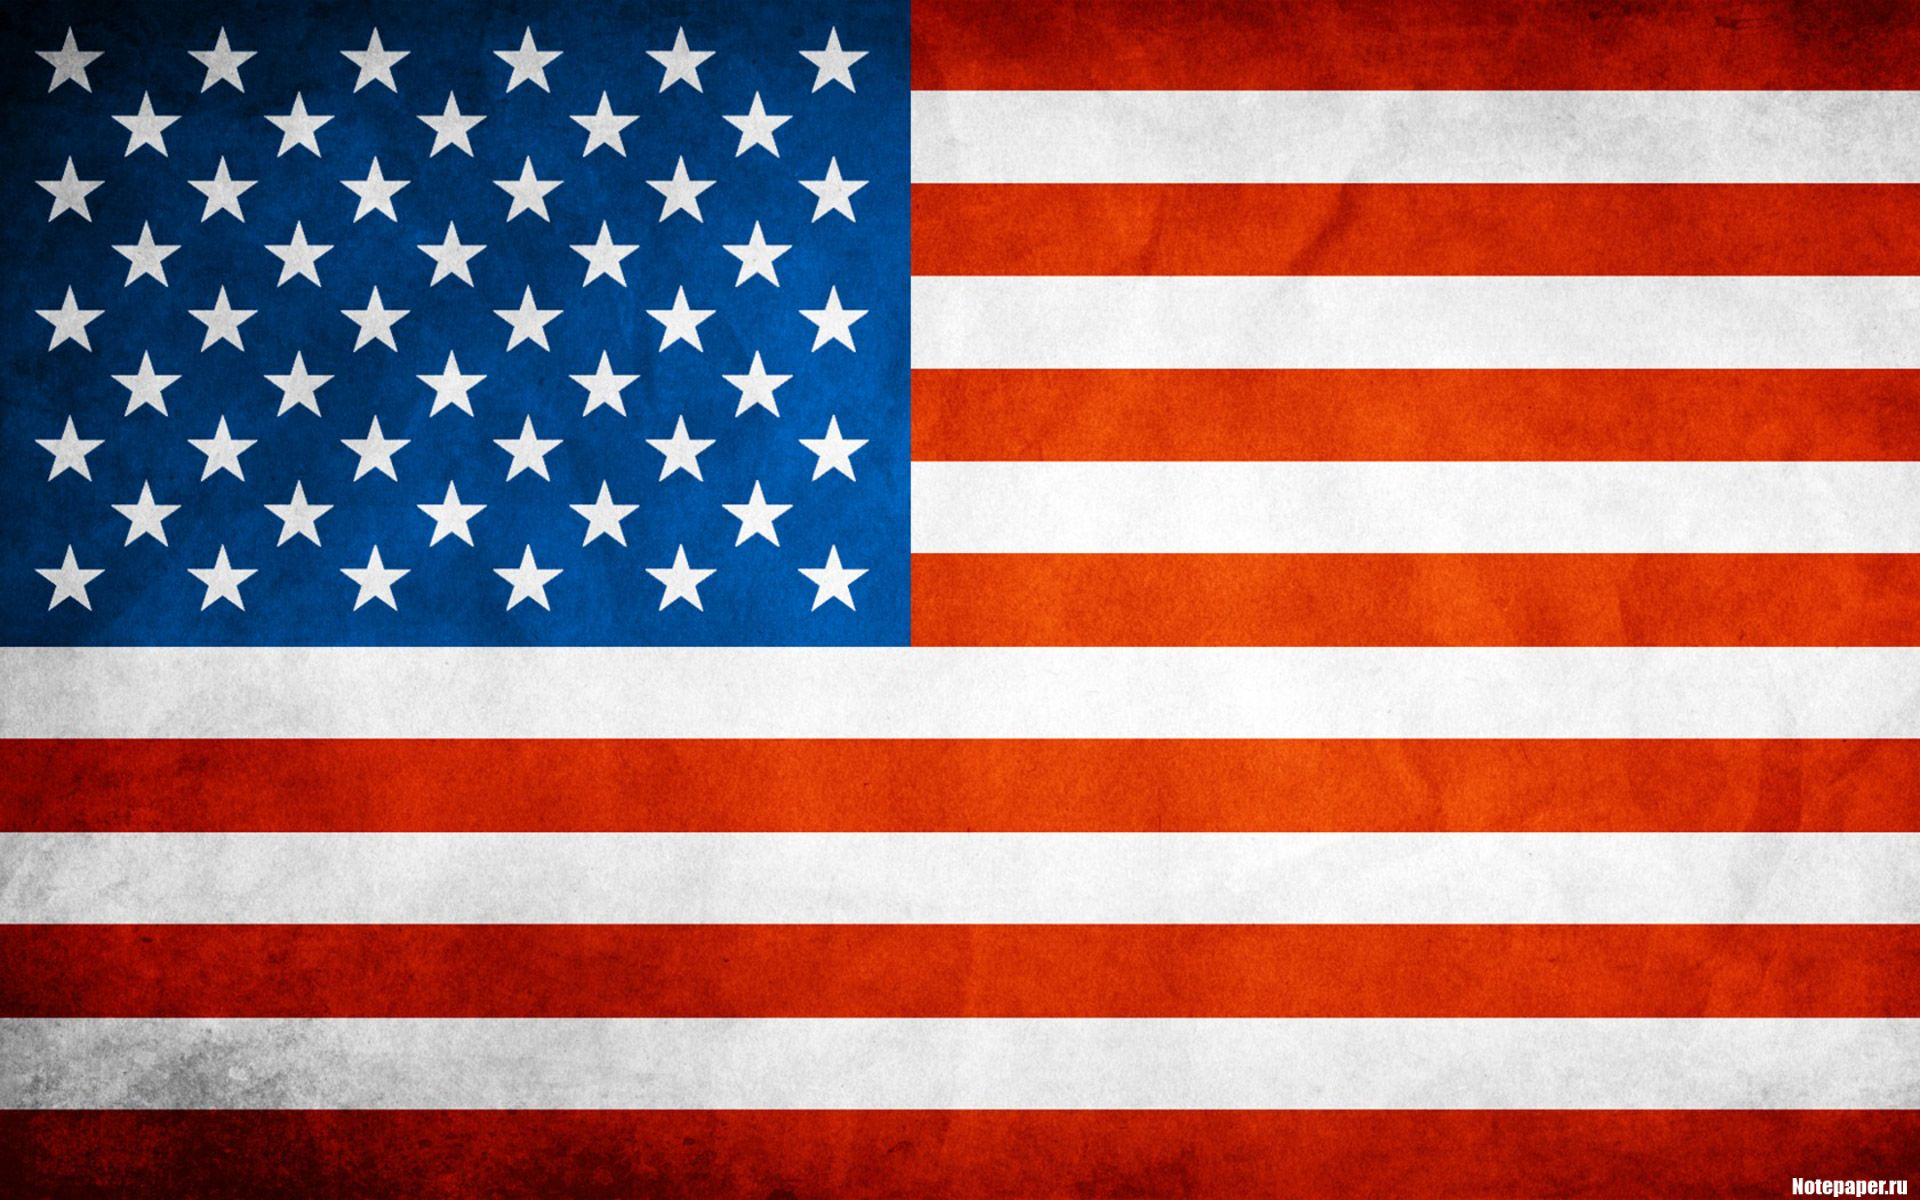 Free download Veterans Day Flag USA Flag Image Pictures Wallpapers Happy [1920x1200] for your Desktop, Mobile & Tablet